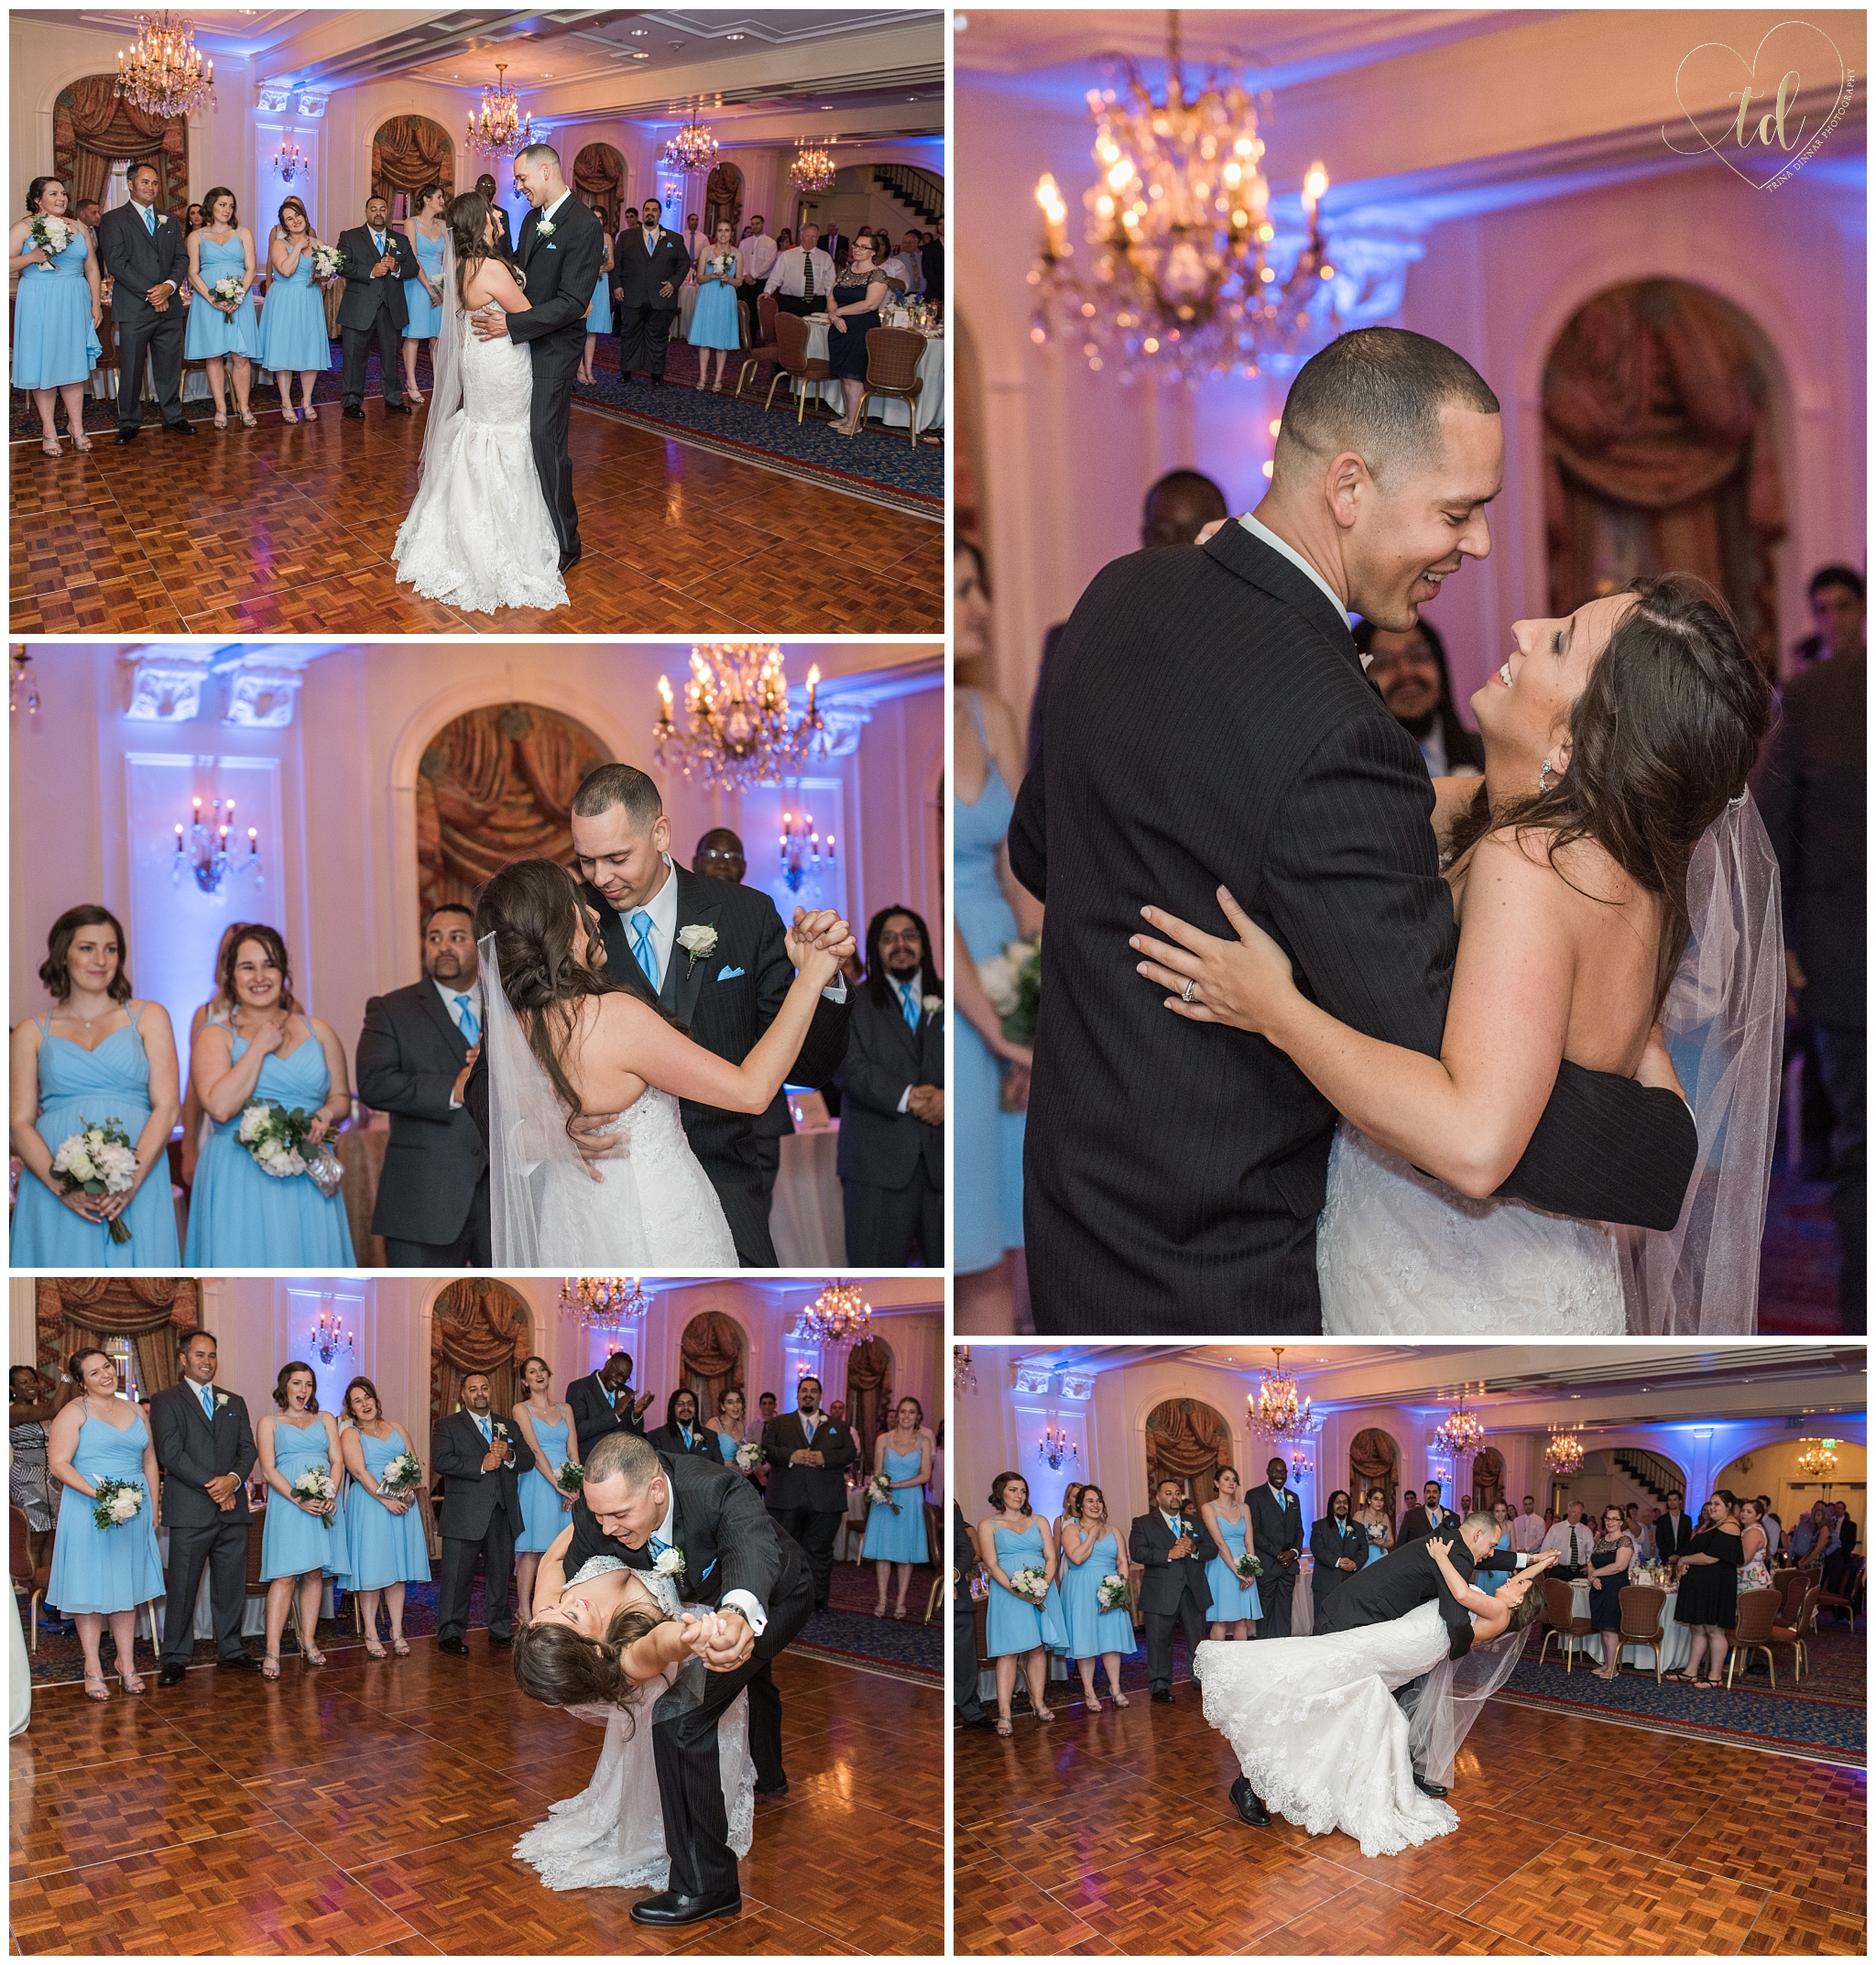 Couple shares First Dance at their Wedding in the Wentworth Ballroom